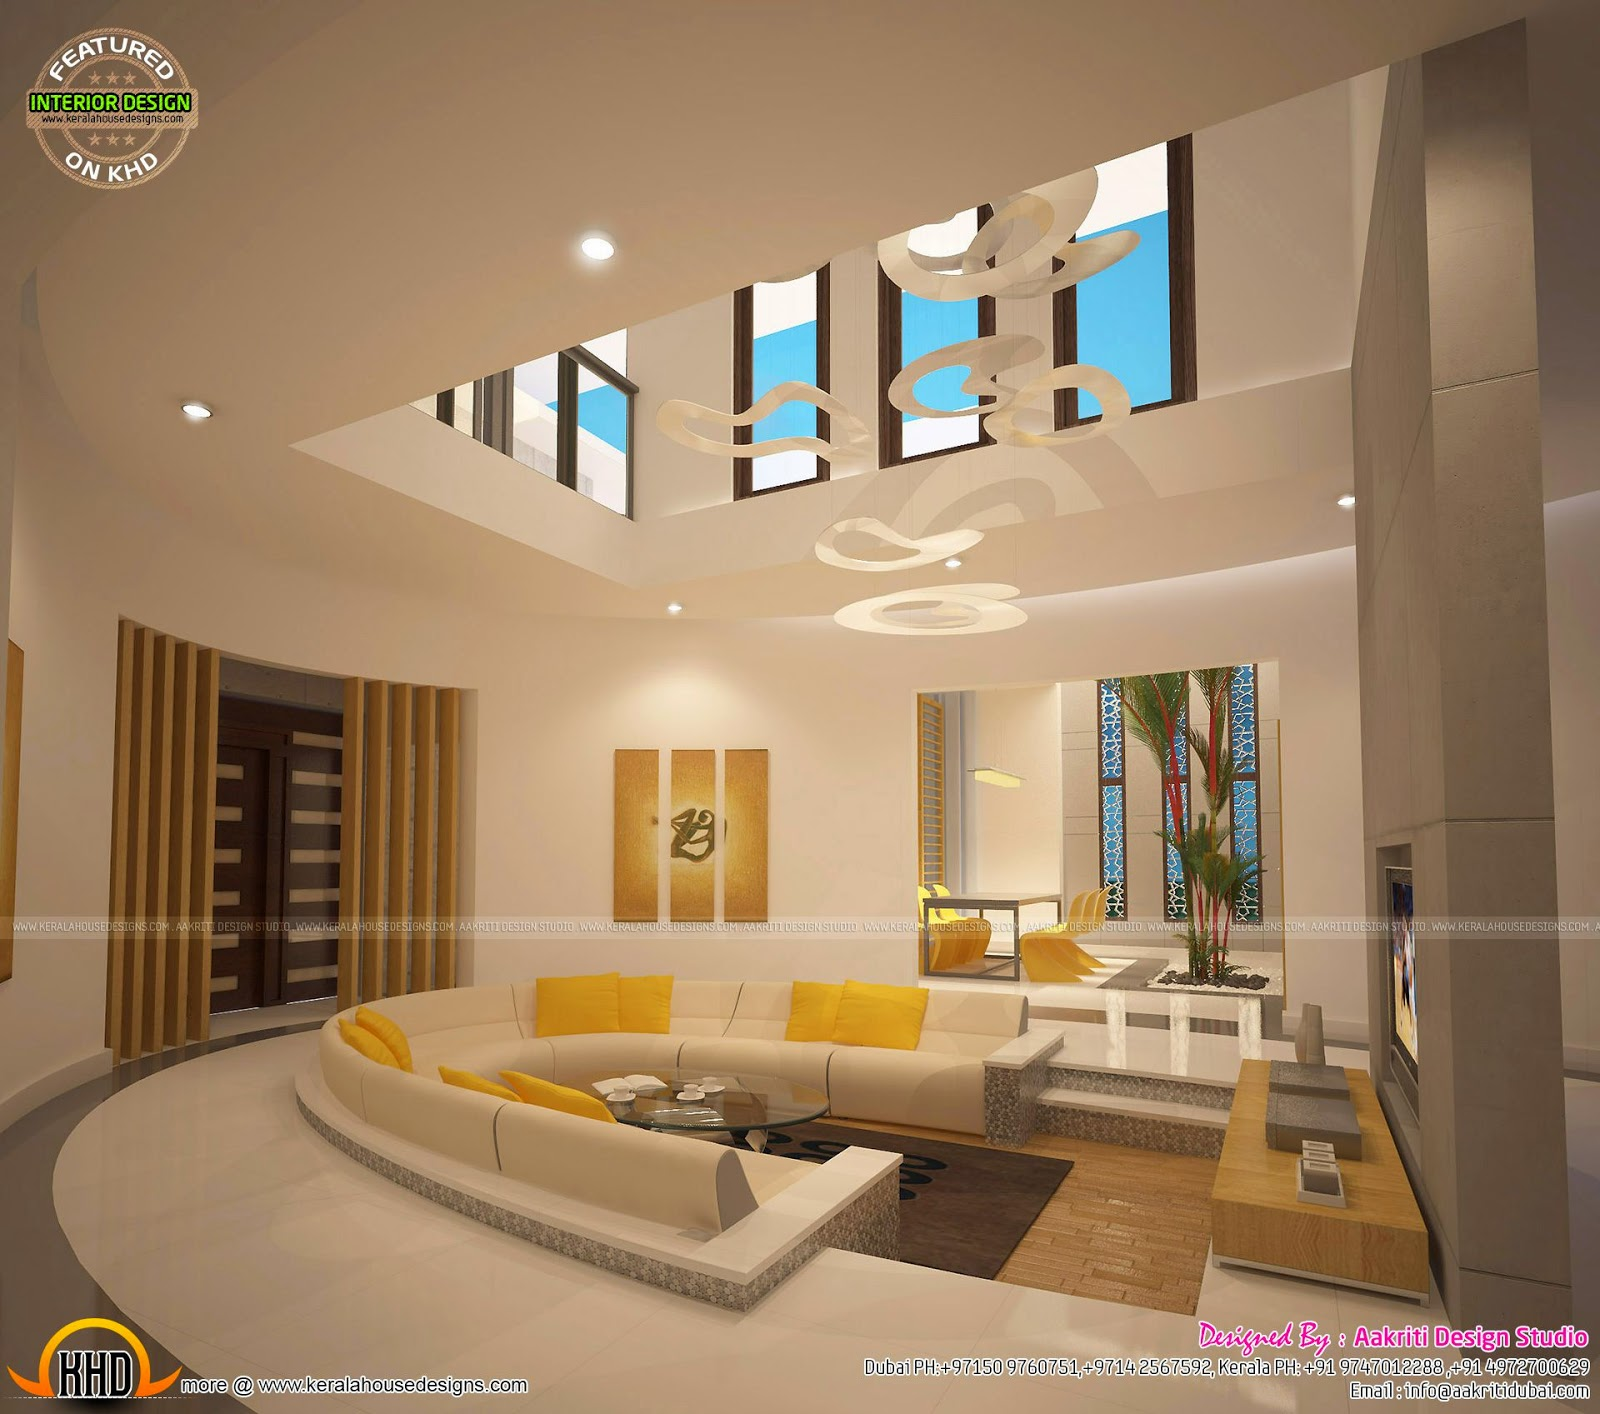 Awesome interiors of living kitchen and bathroom kerala for Awesome home interiors